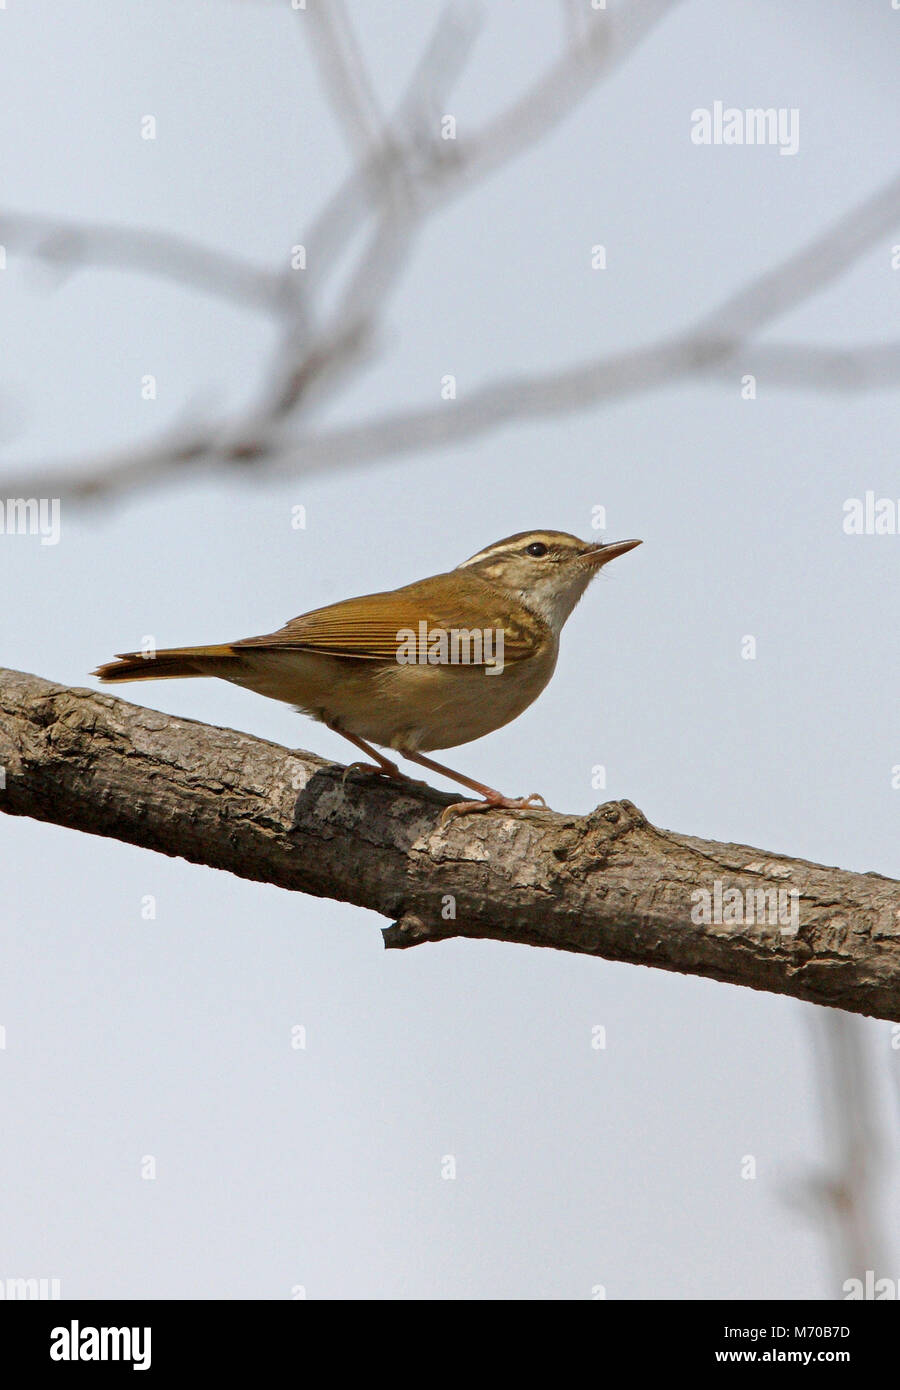 Pale-legged Leaf Warbler (Phylloscopus tenellipes) adult standing on branch  Hebei, China           May Stock Photo